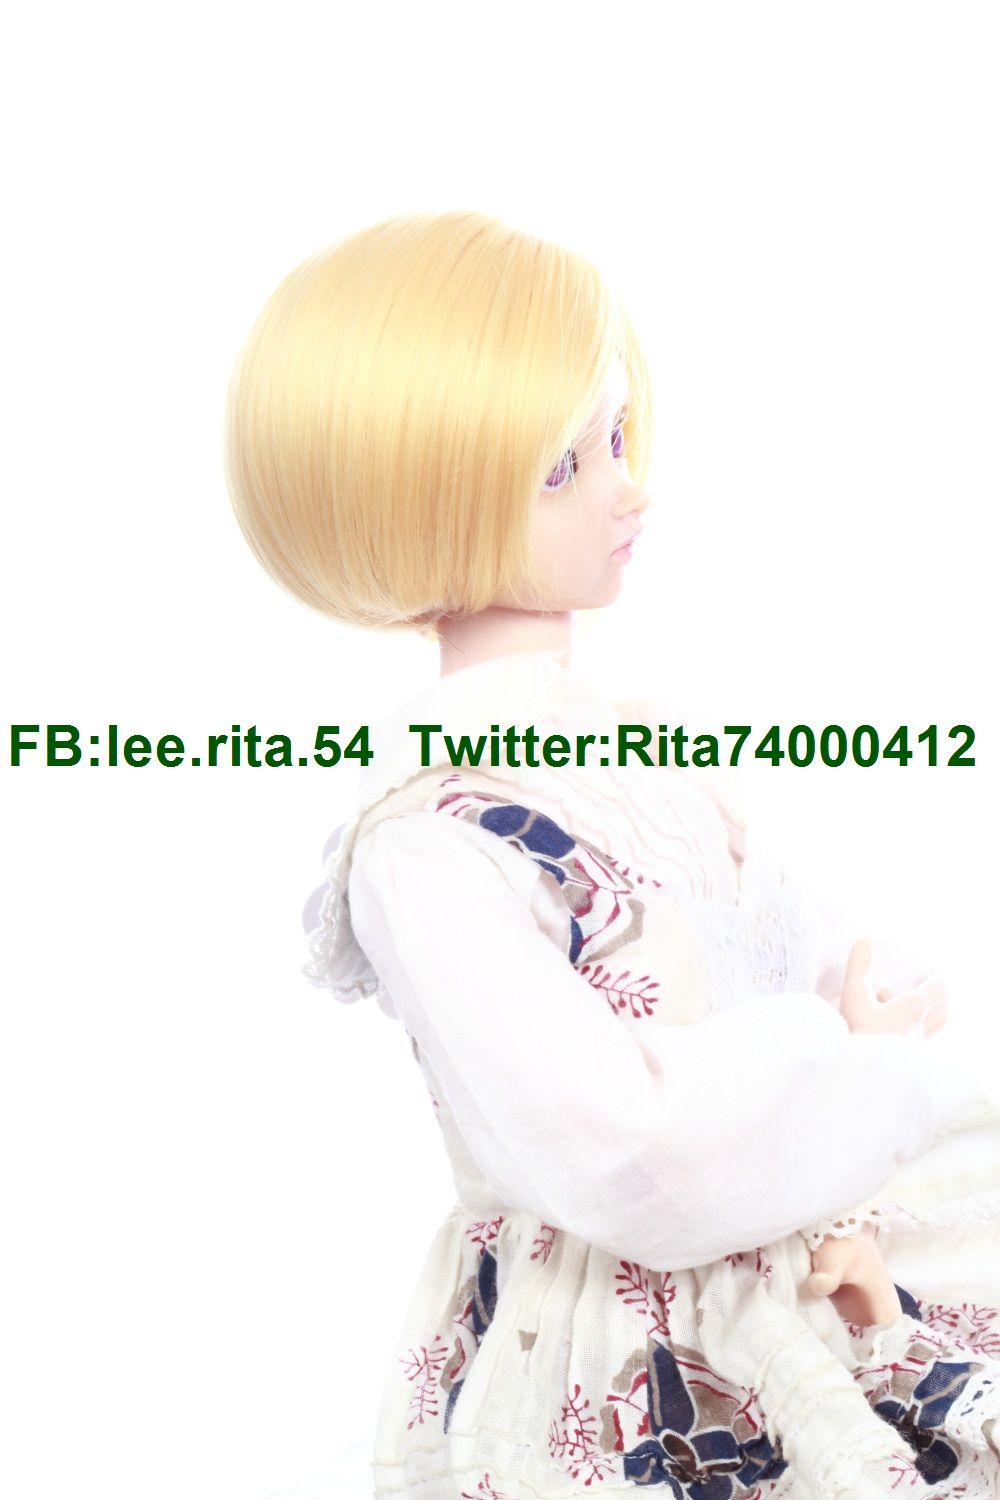 Blonde Lace Front Wigs Wavy Blond Color Wig Bright Full Lace Wig Artificial Hair Wig 2012 Wigs 18 Inch Full Lace Wigs 2012 Colorful Short Wigs 2011 Wig 2011 Top Blonde Wigs 100 Indian Full Lace Wig